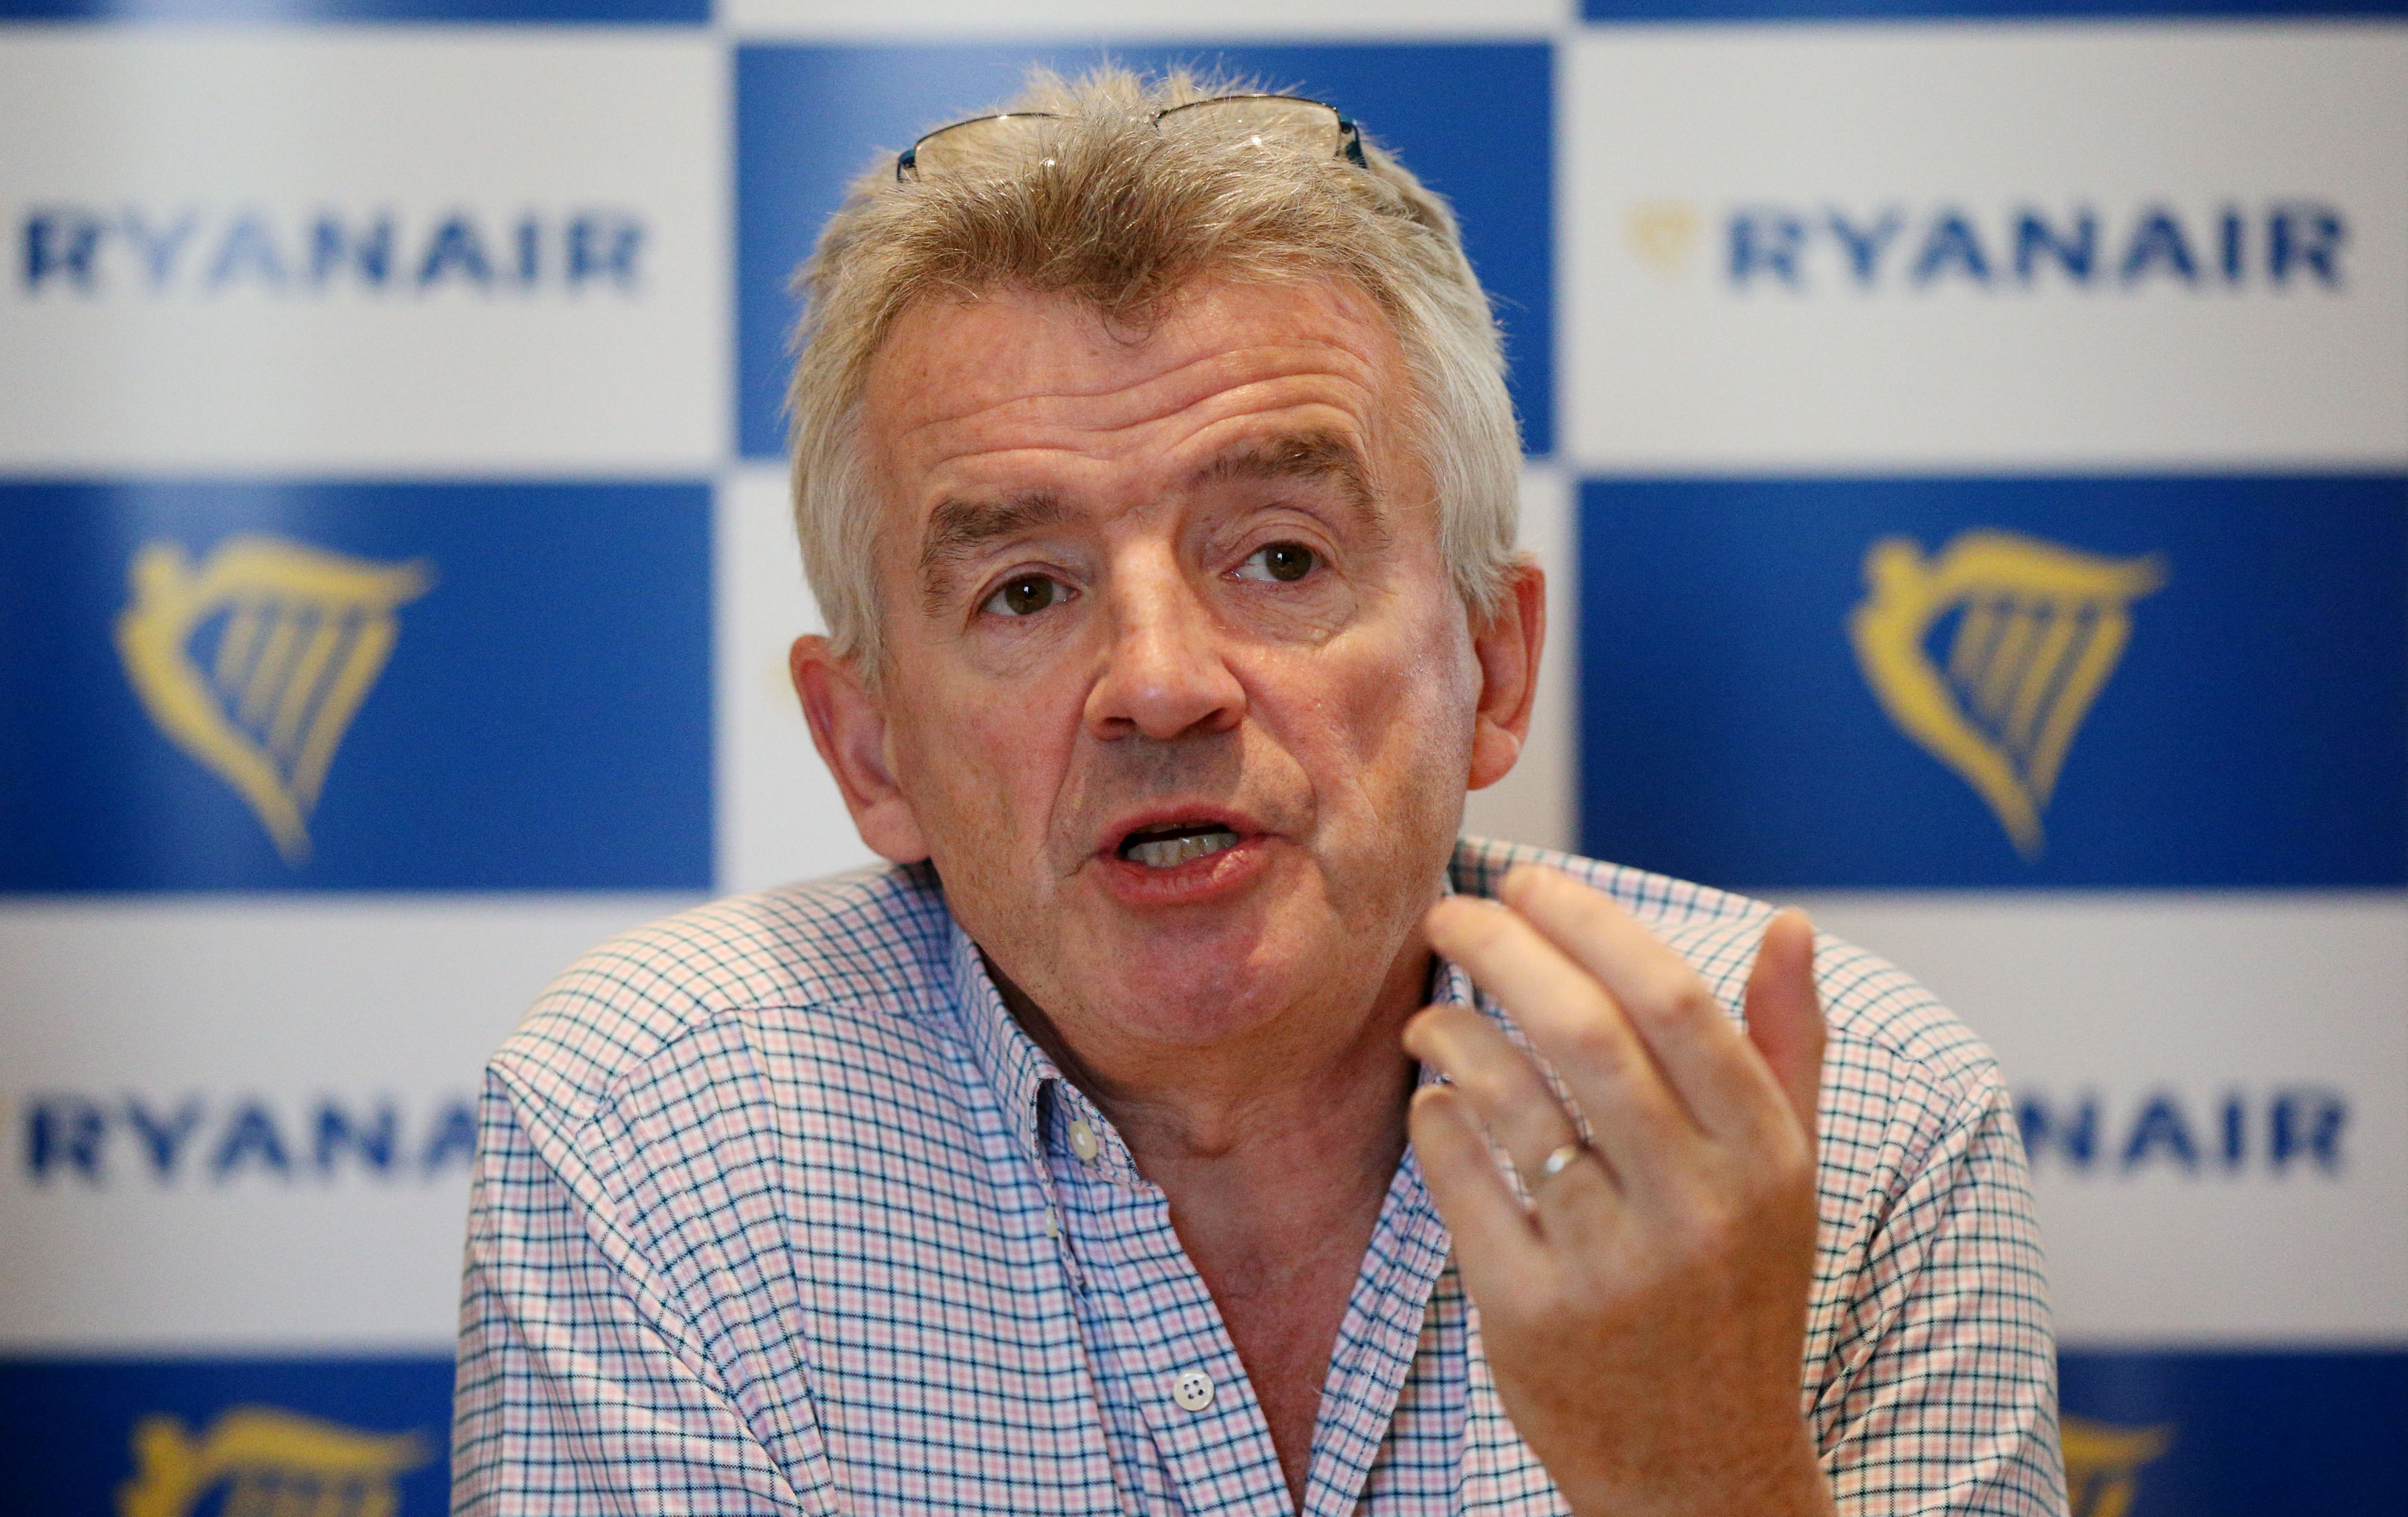 Ryanair forecasts Boeing 737 Max grounding to hit annual profits